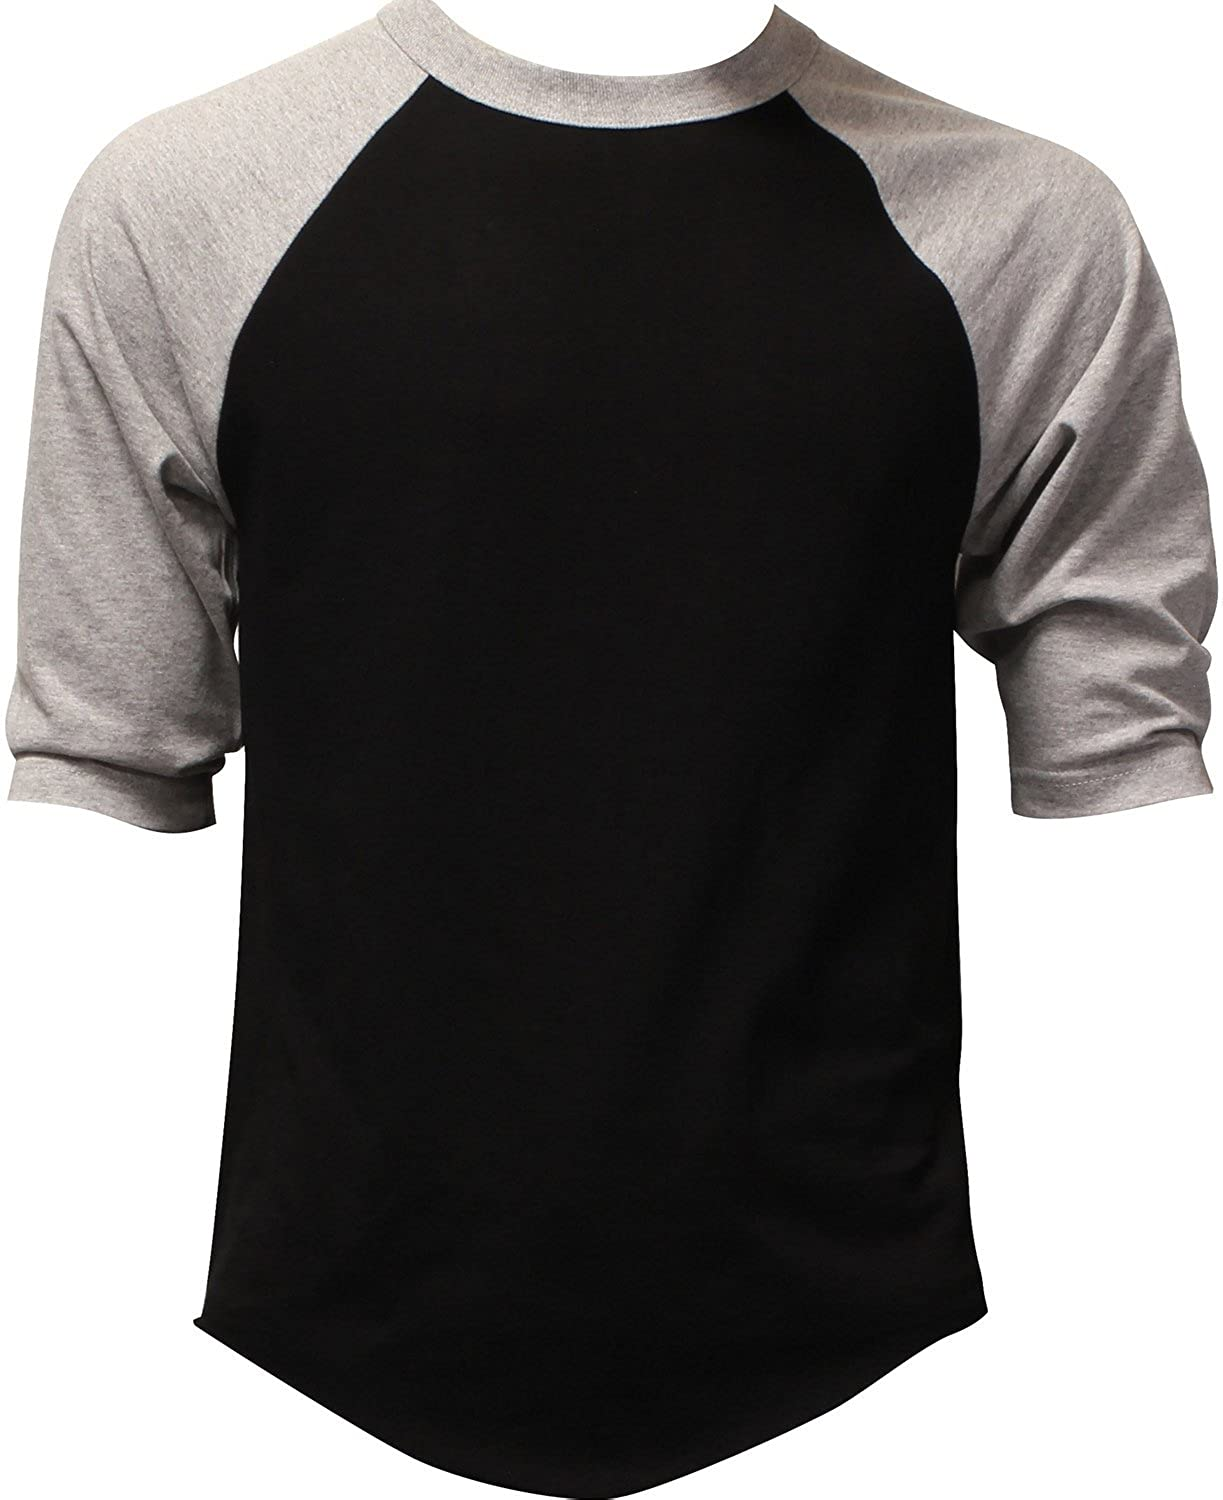 789604bc07 Top1: Hat and Beyond Mens Baseball T Shirts Raglan 3/4 Sleeves Tee Cotton  Jersey S-3xl